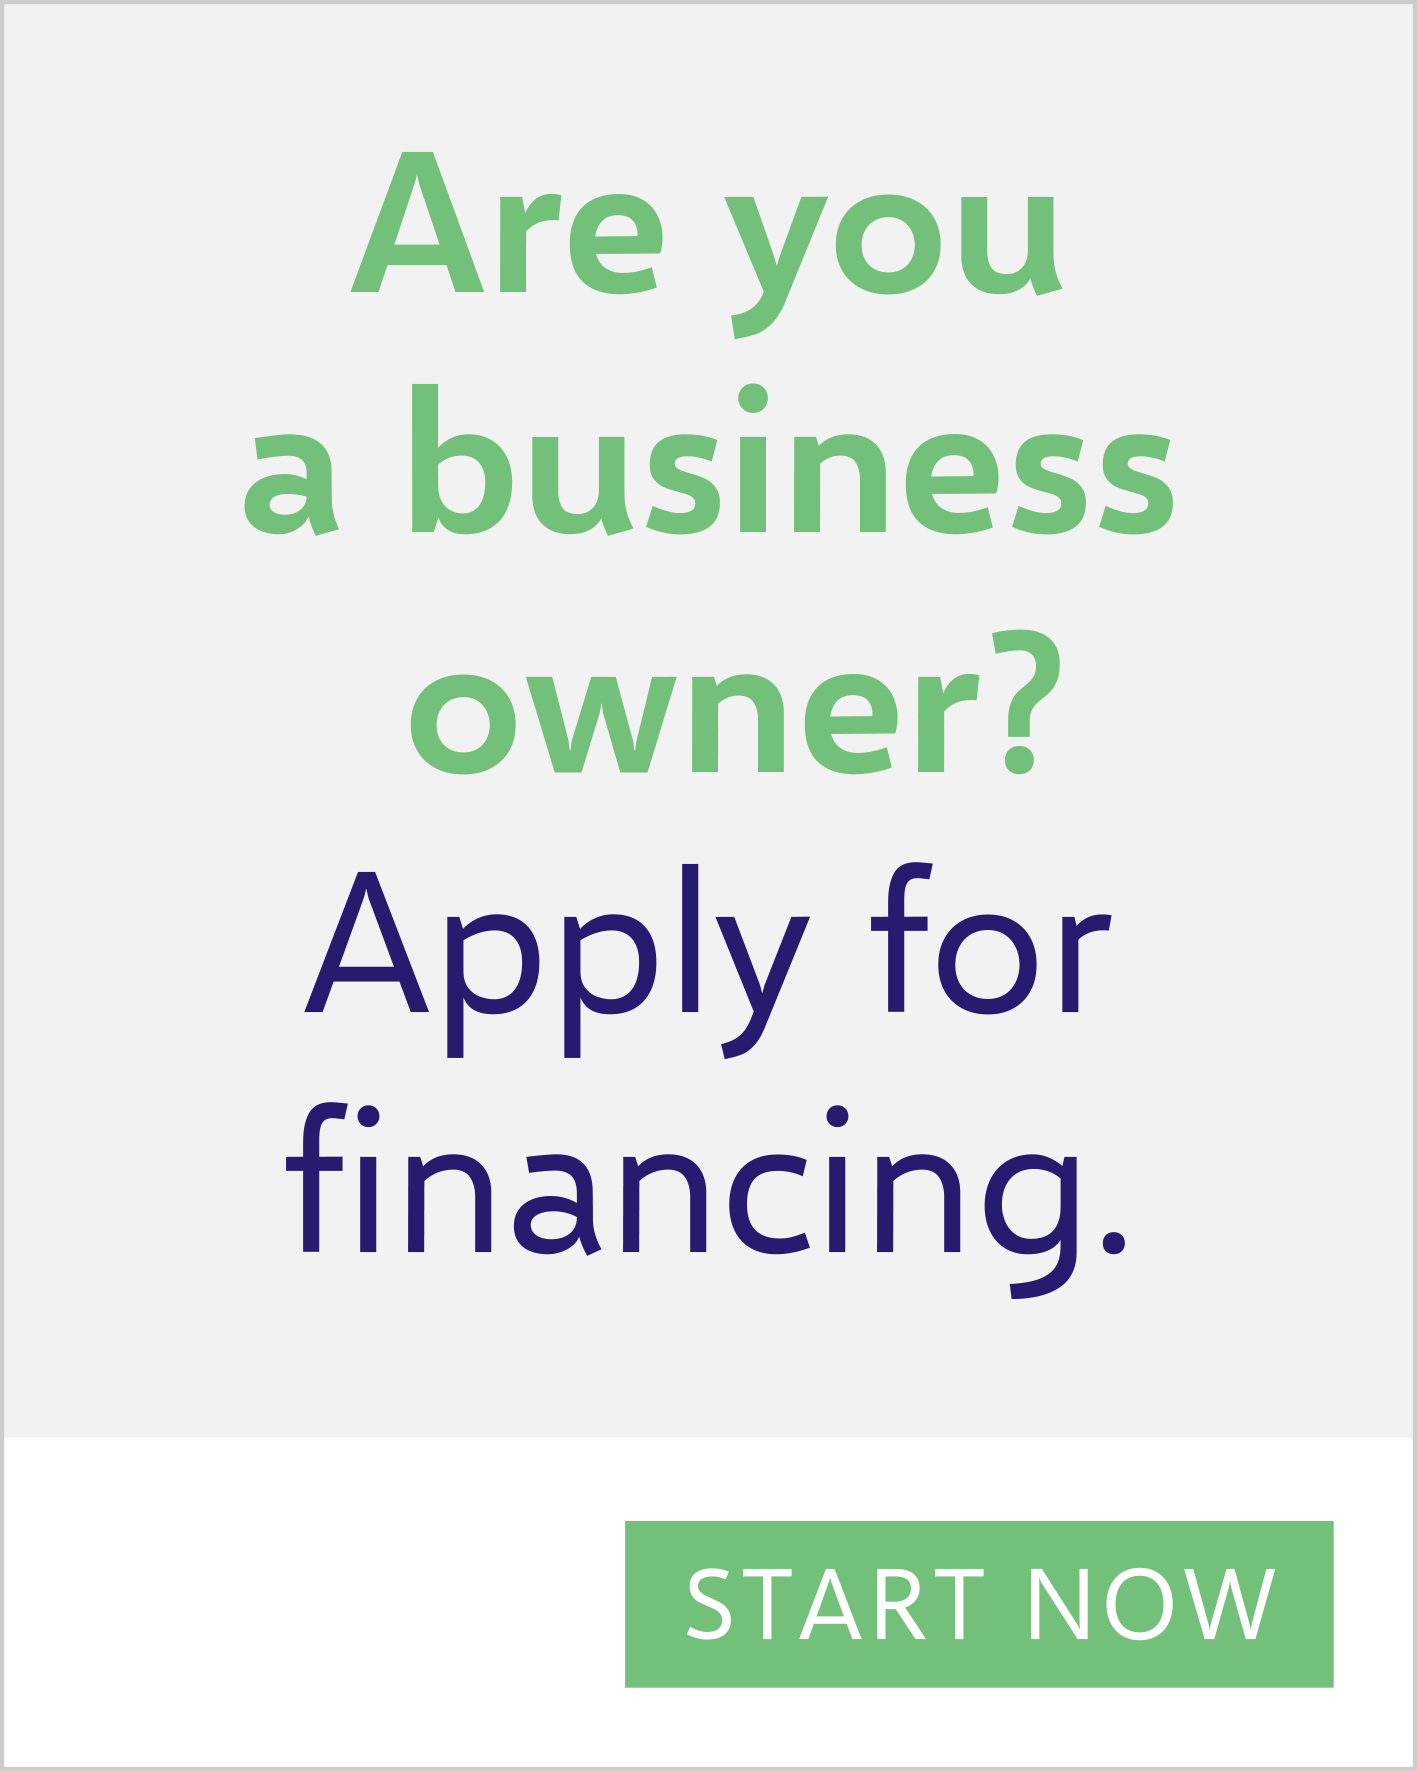 Are you a business owner? Apply for financing. Start Now.